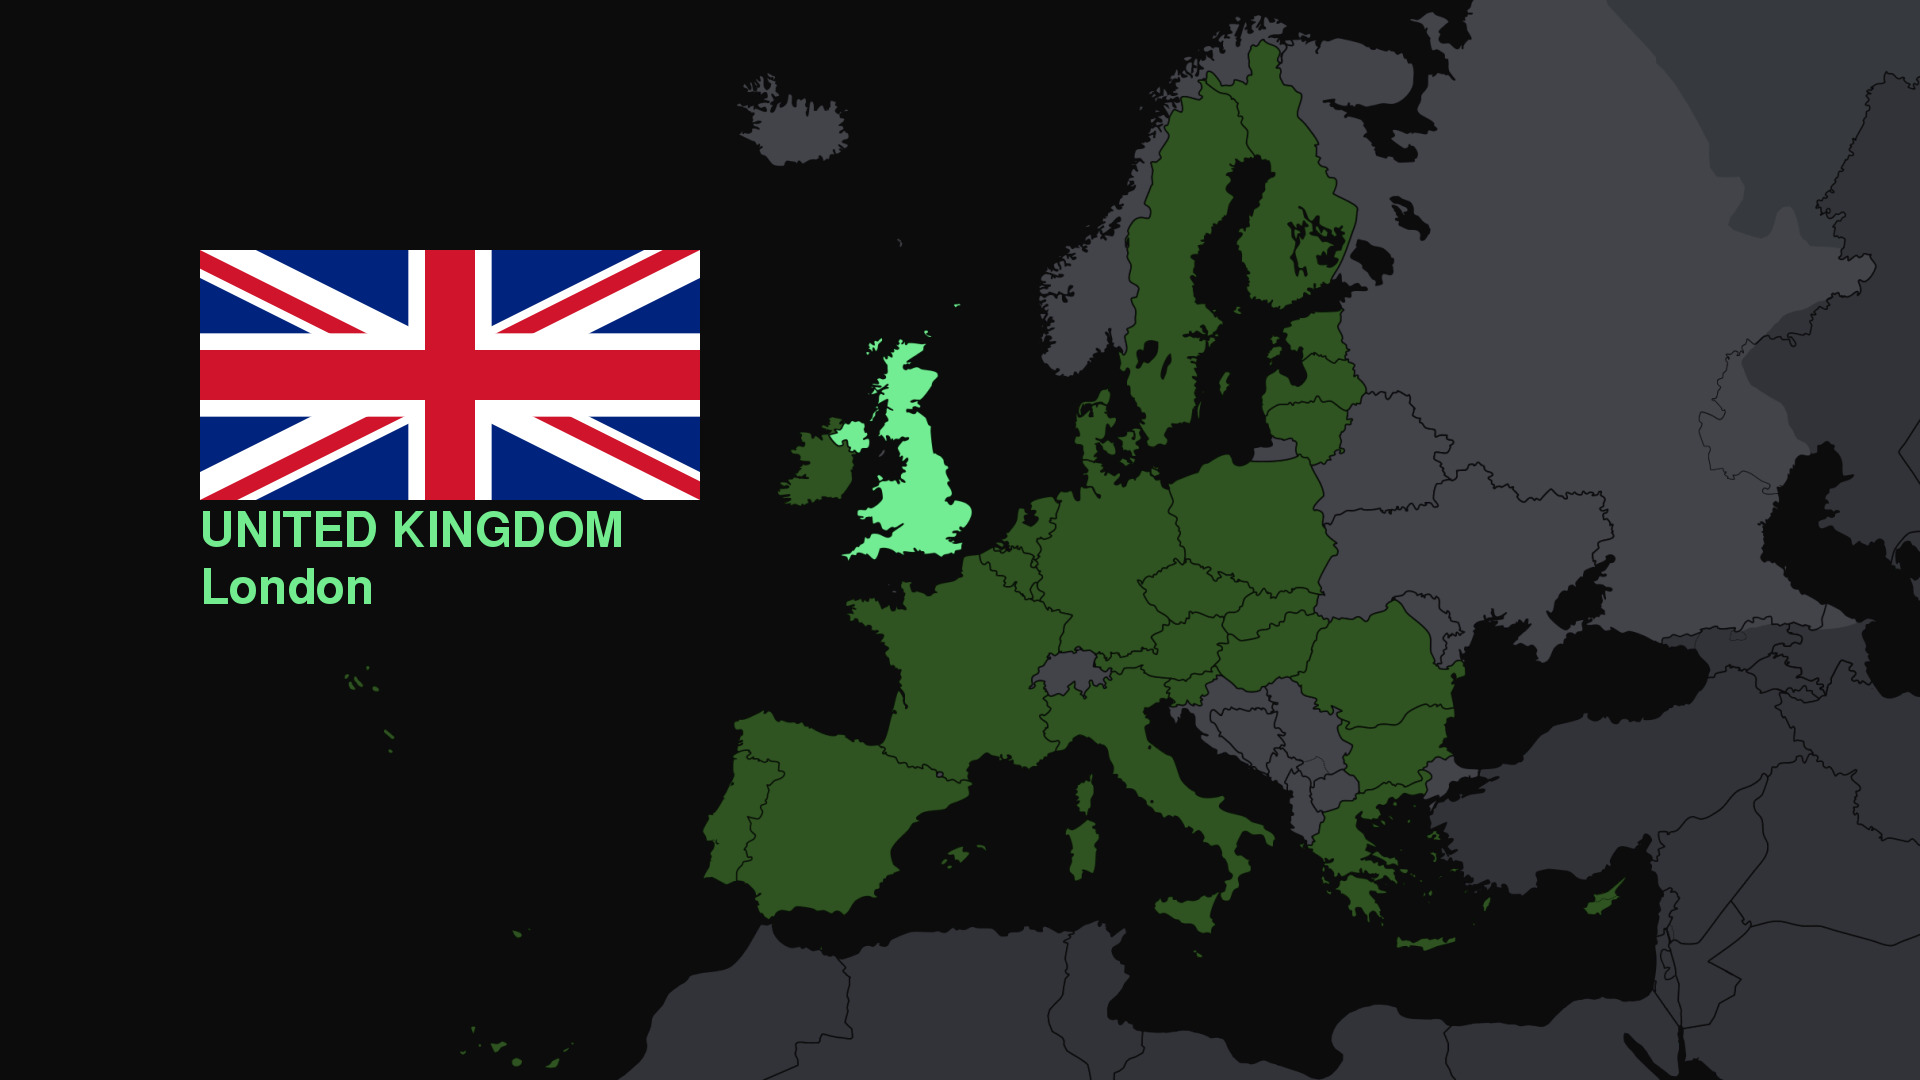 Europe Maps united kingdom HD Wallpaper